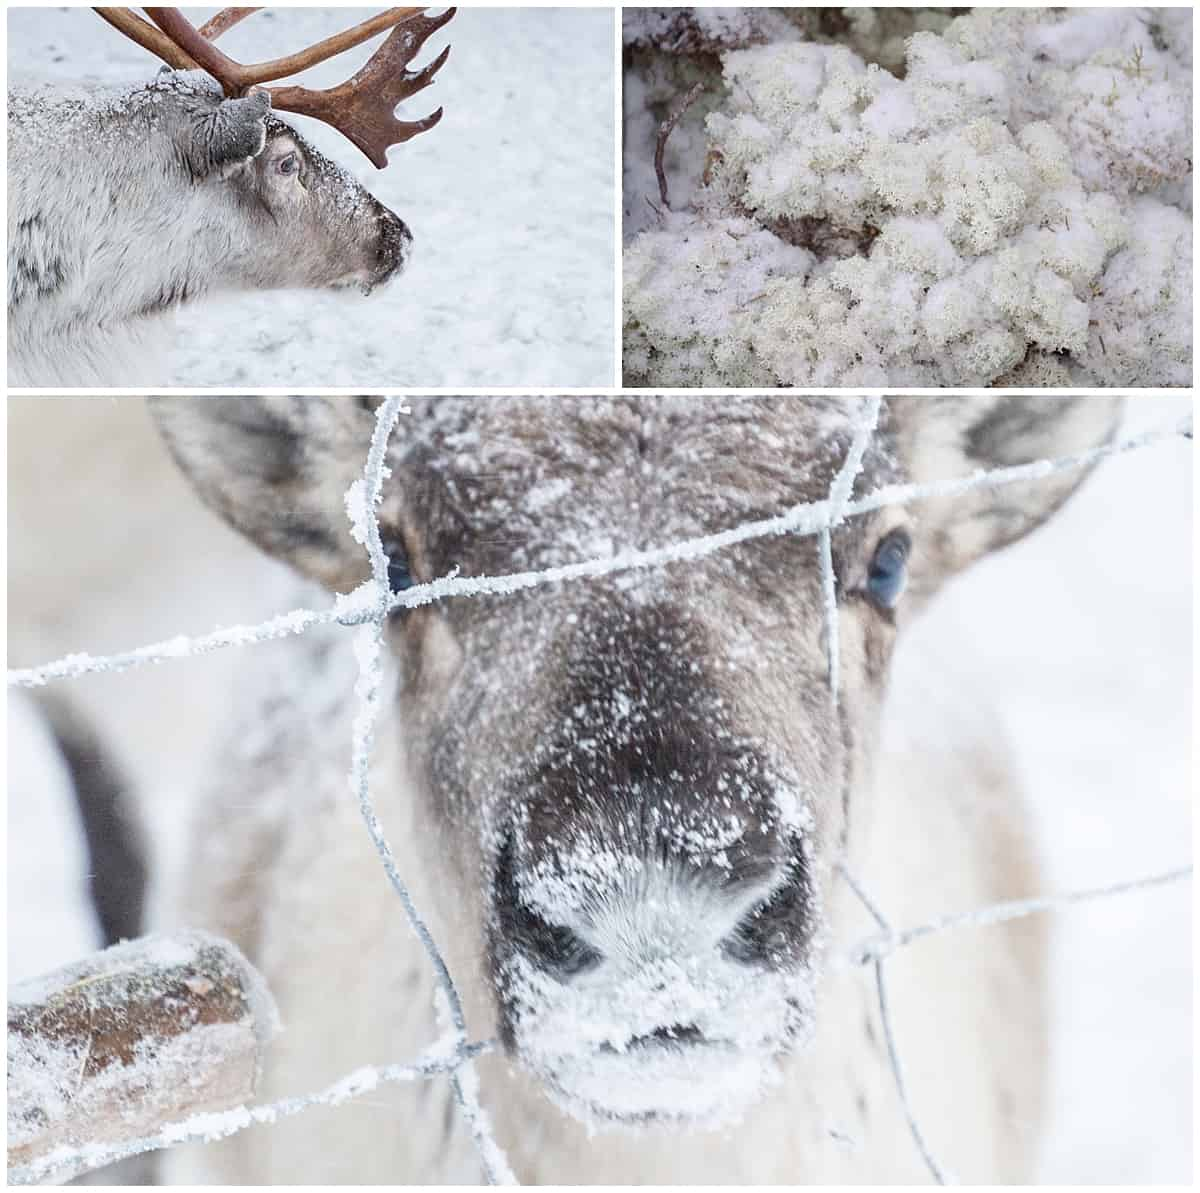 Lichen and close ups with reindeer in Lapland